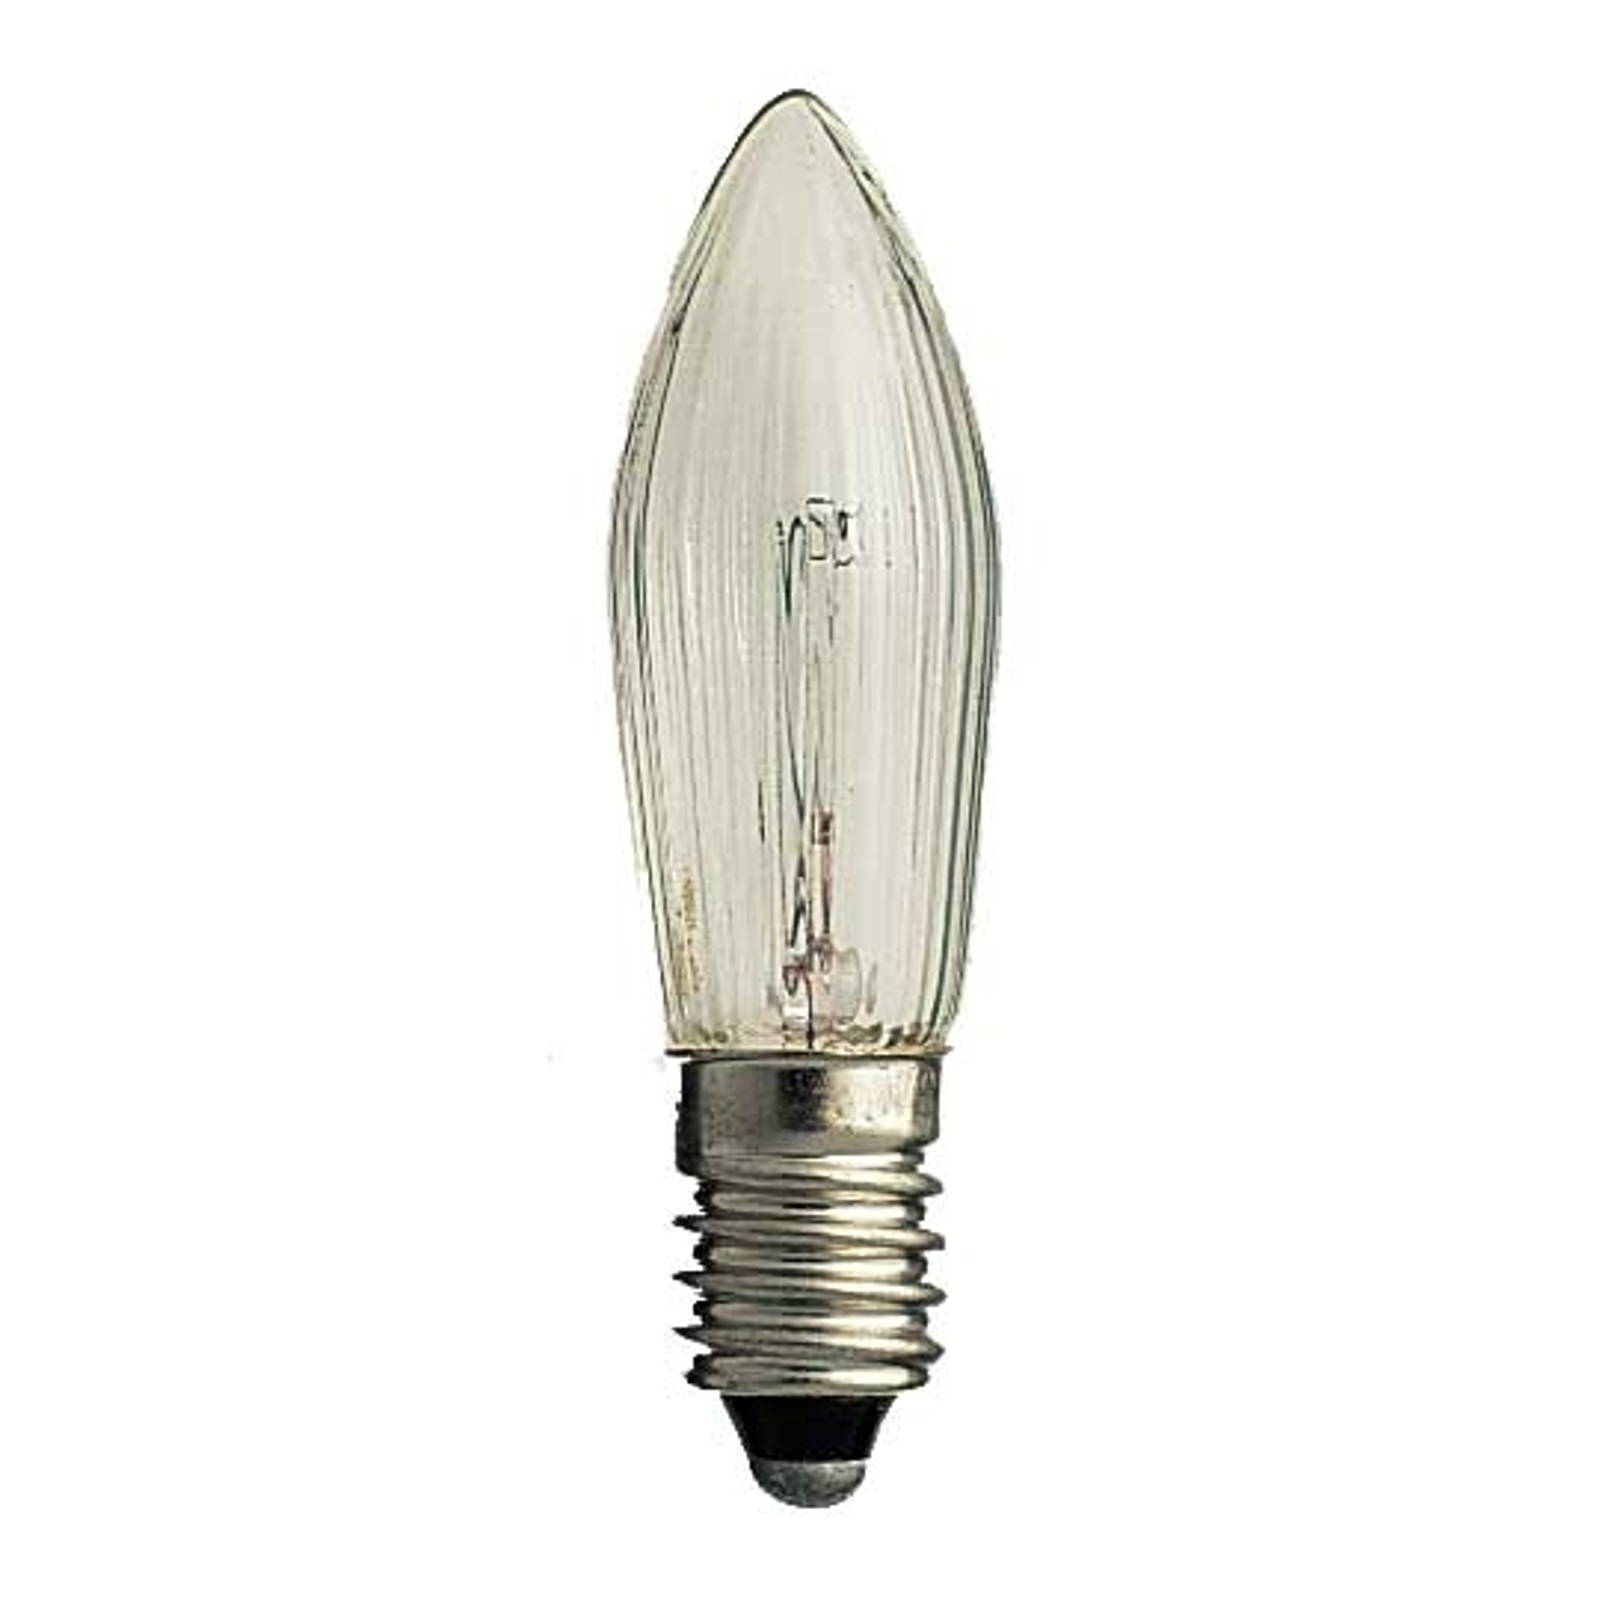 E10 3W 34V spare candle bulbs in a pack of 3_5524238_1